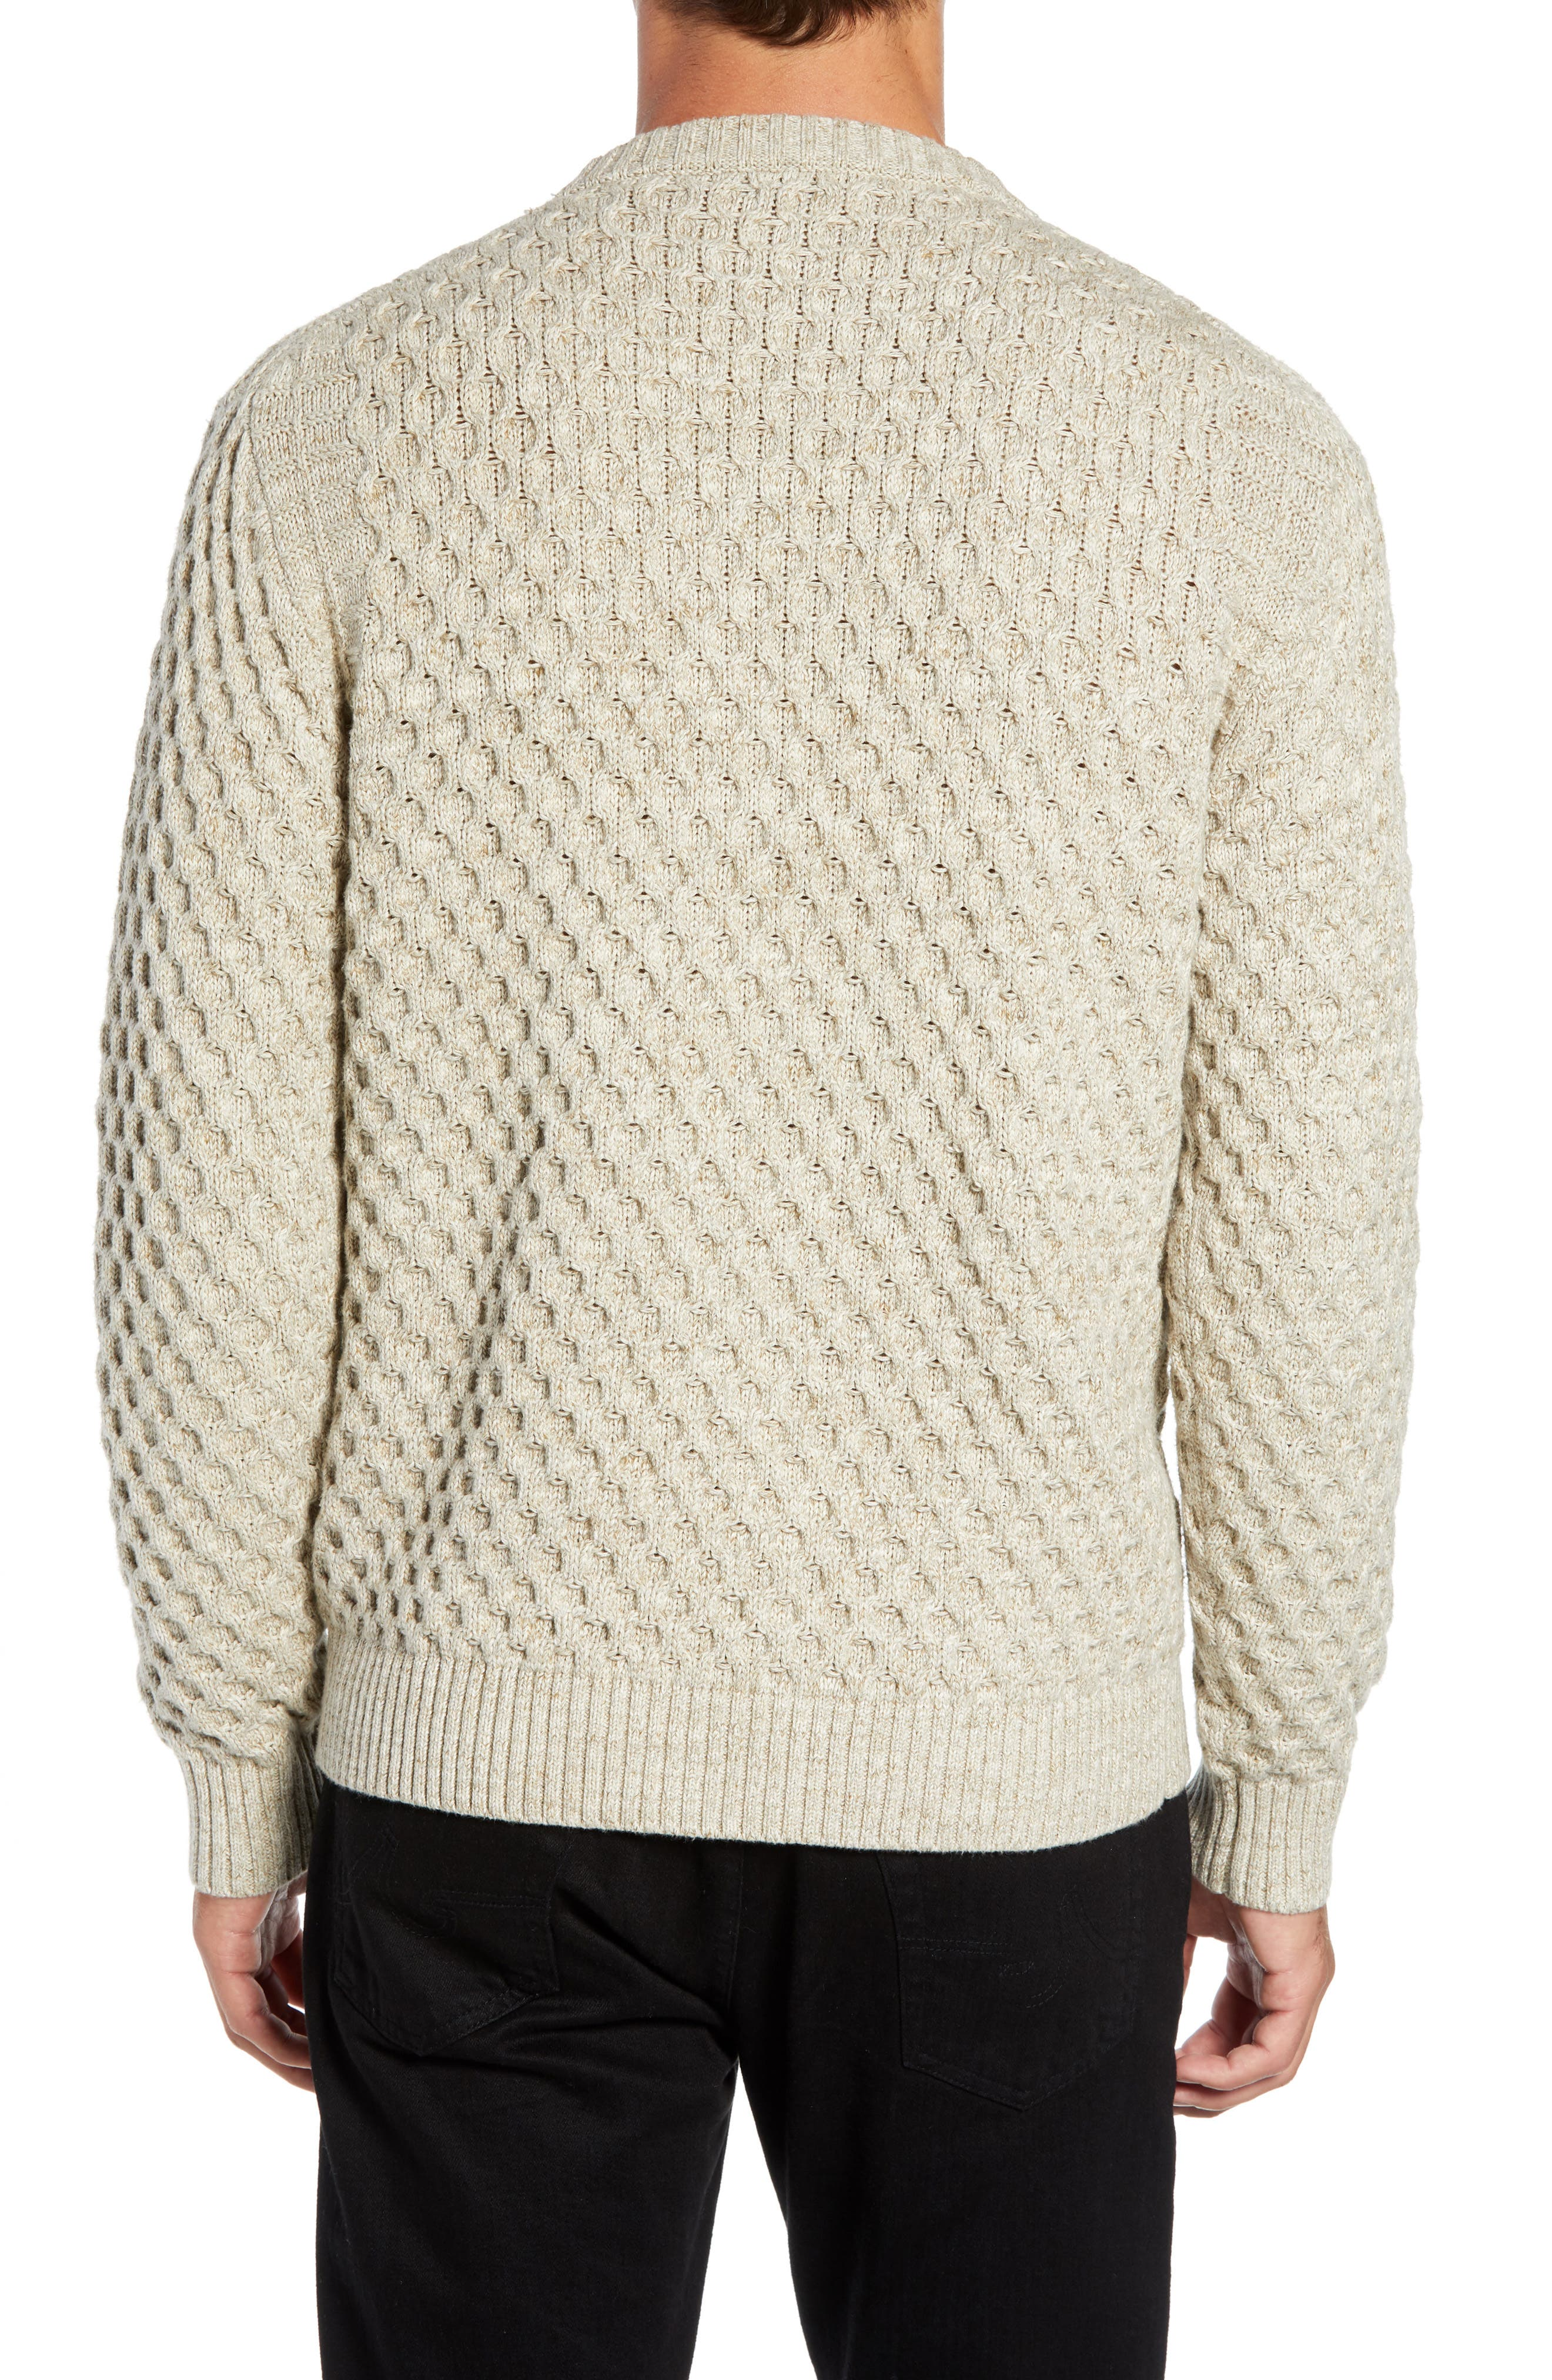 Ethan Fisherman Cable Sweater,                             Alternate thumbnail 2, color,                             CREAM